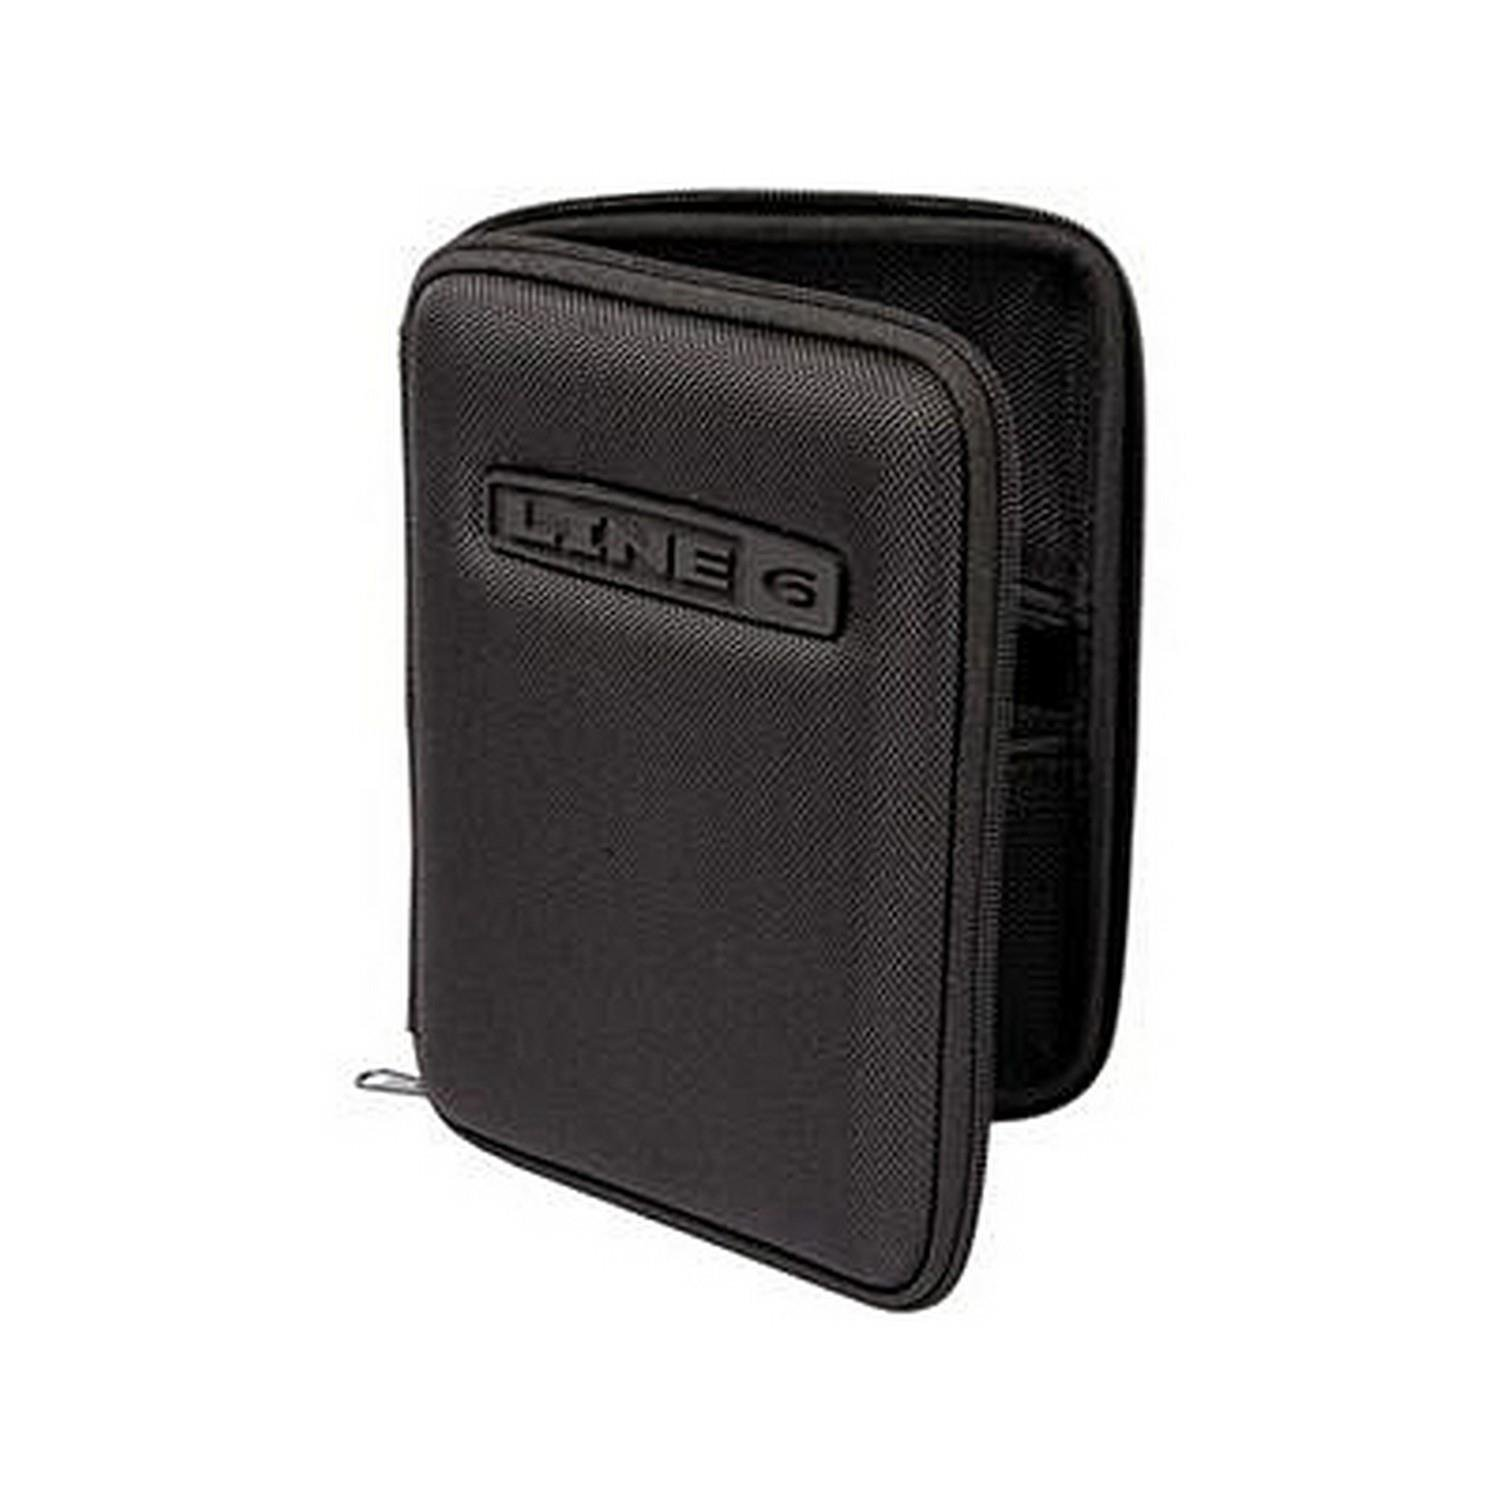 Line 6 - TBP12 Carry Case for Relay G50/90 and XDV55/75 Bodypack Units - Black